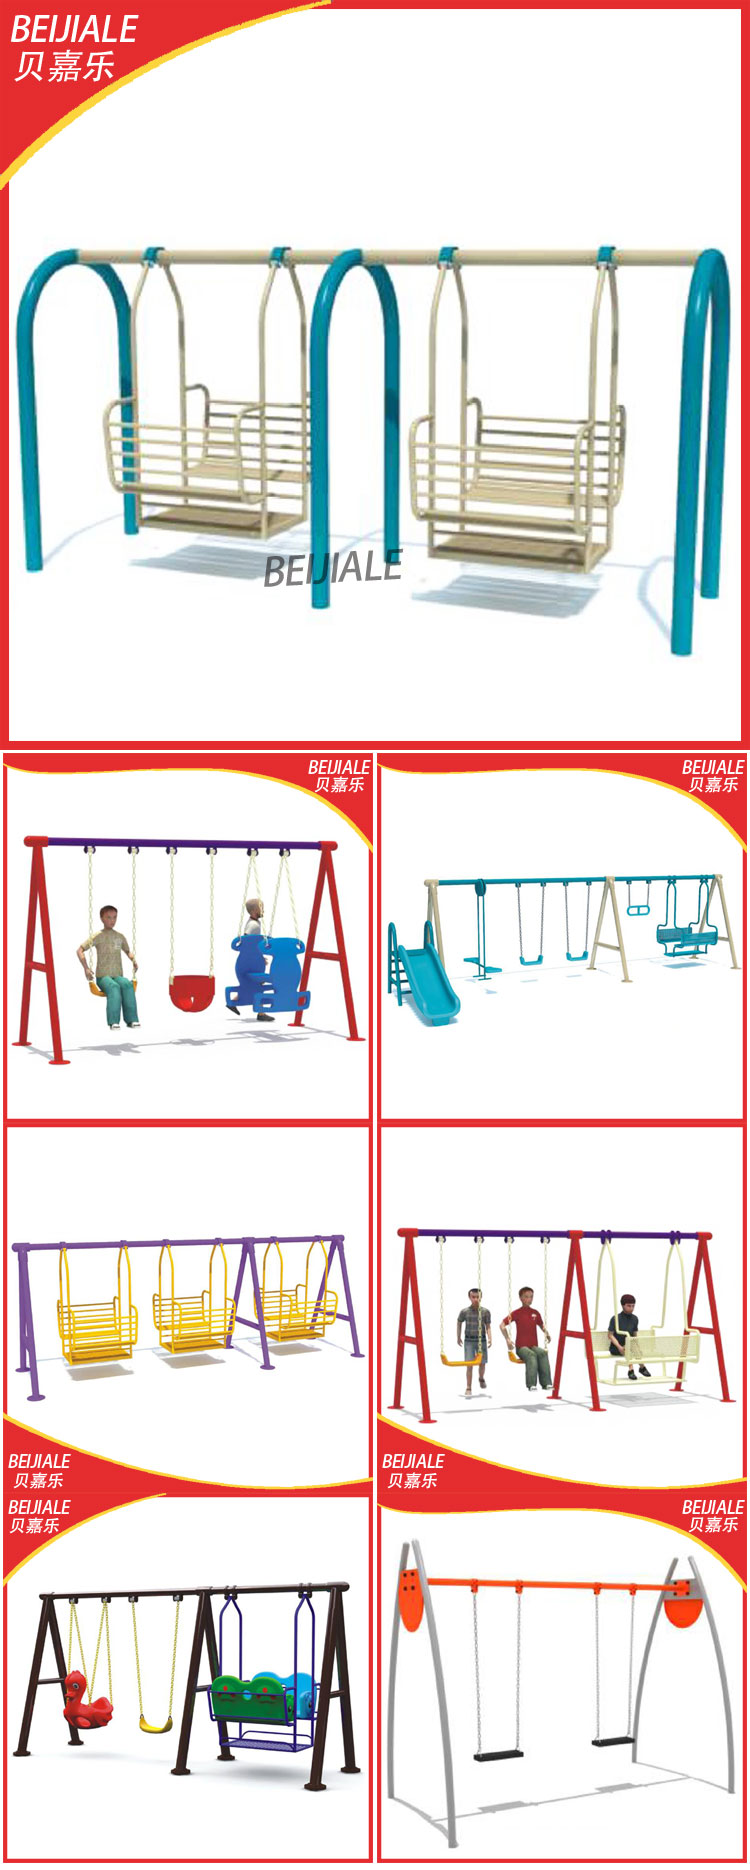 Best selling baby garden swing and slide for outdoor use